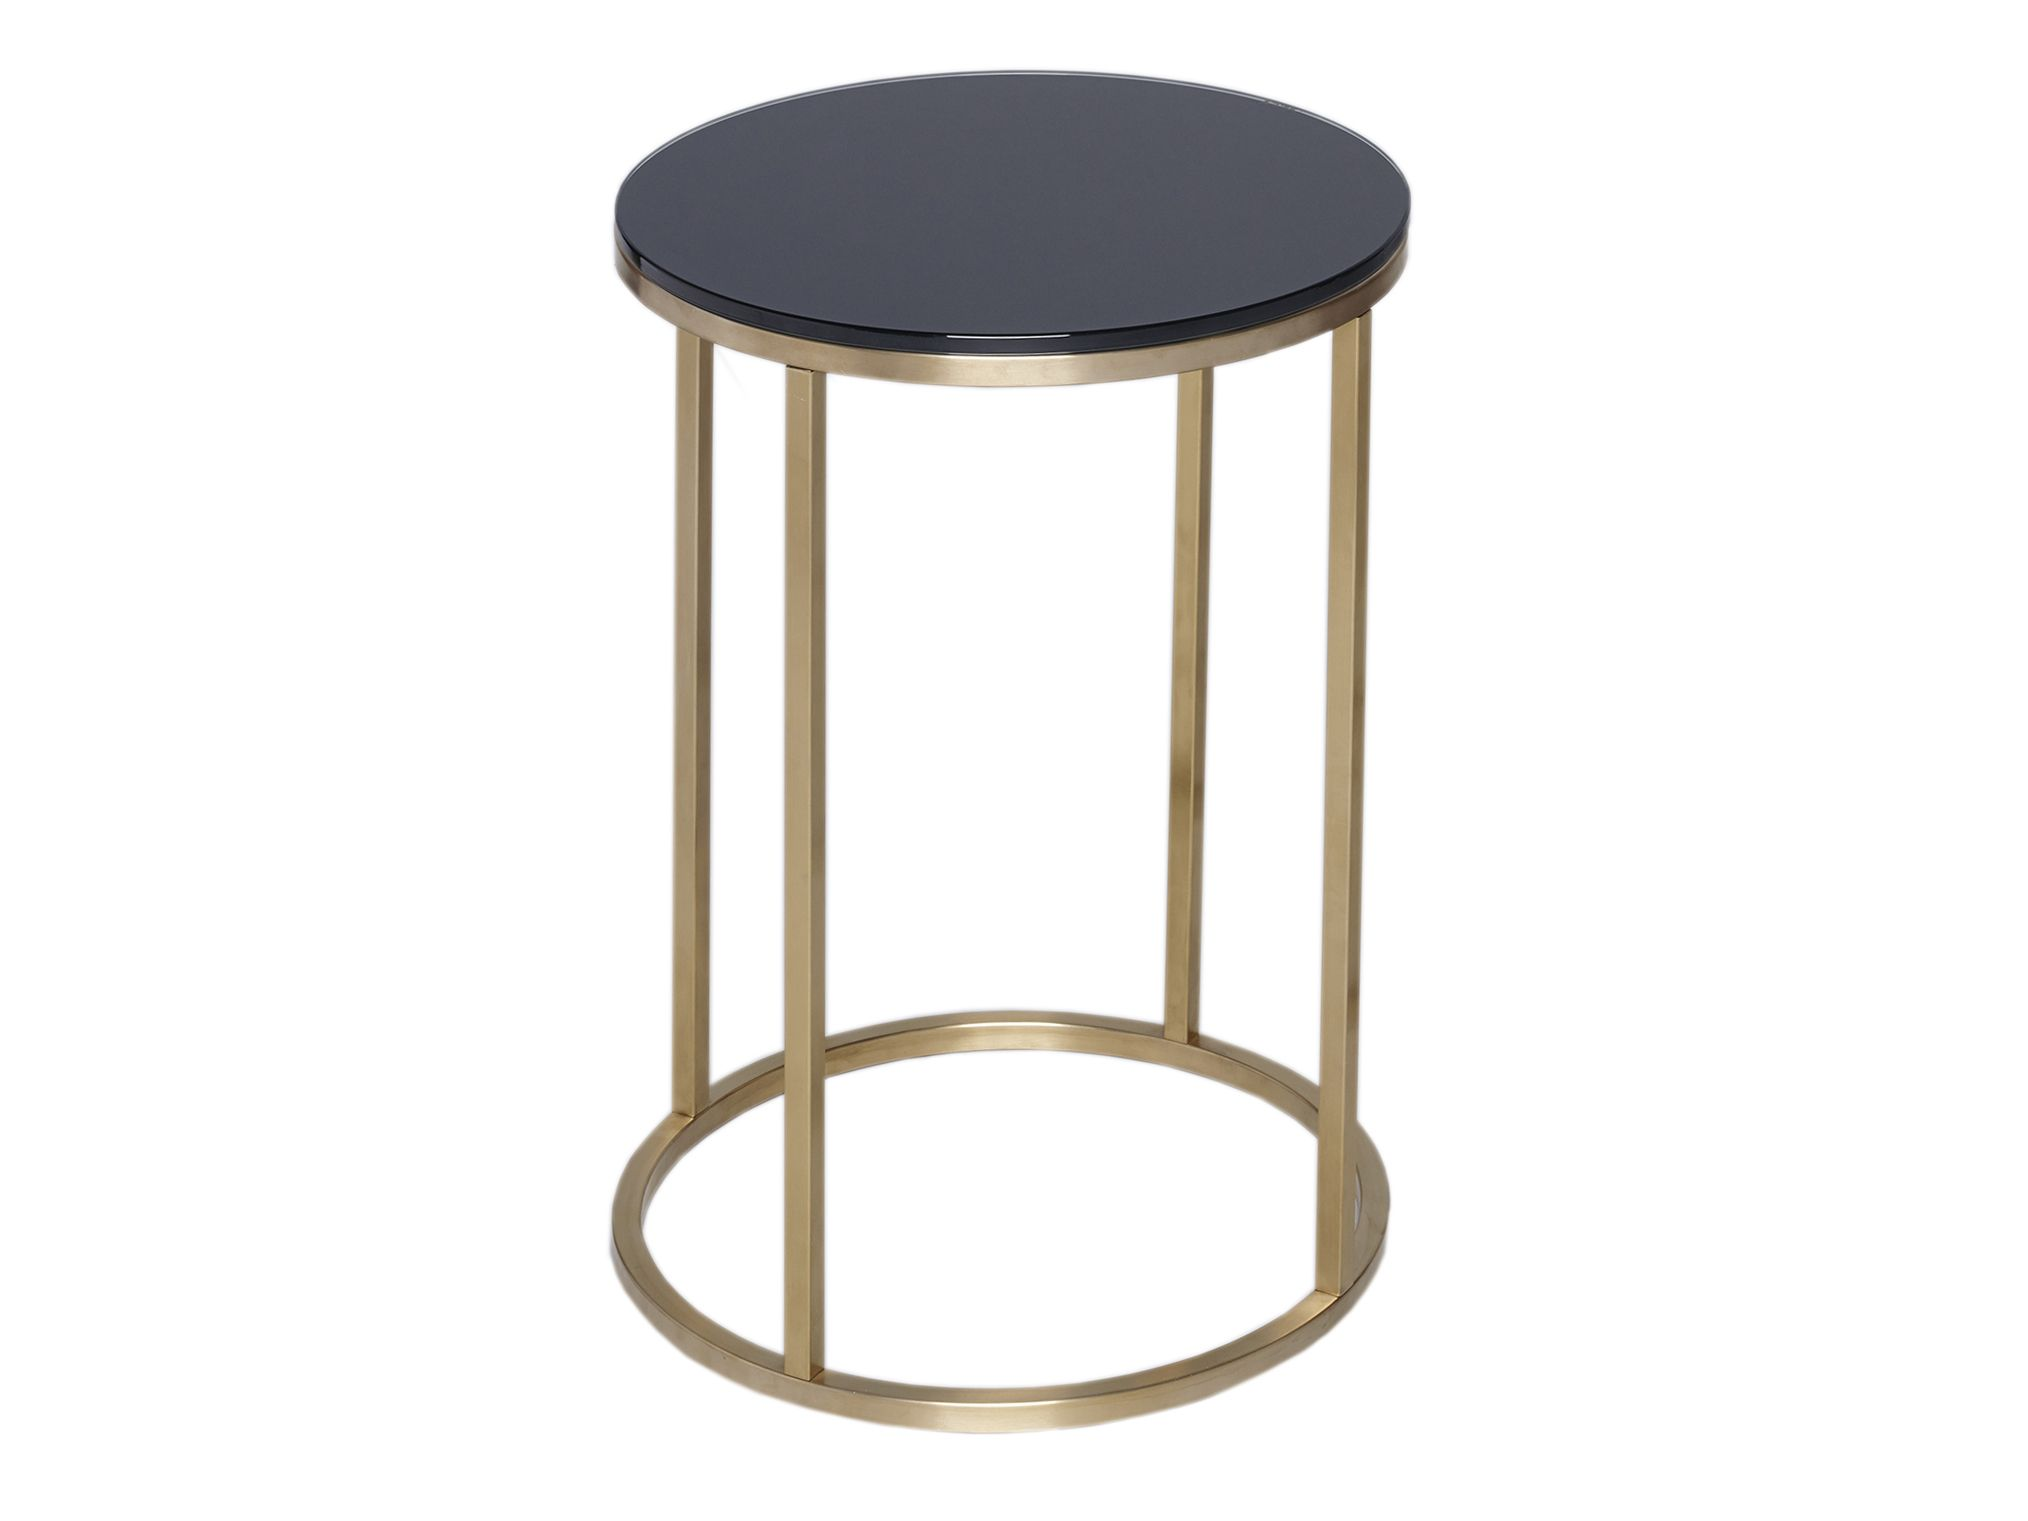 the terrific real black side table round mira road circular kensal with brass base collection from gillmorespace gillmore space desktop metal top protector white wicker glass mid